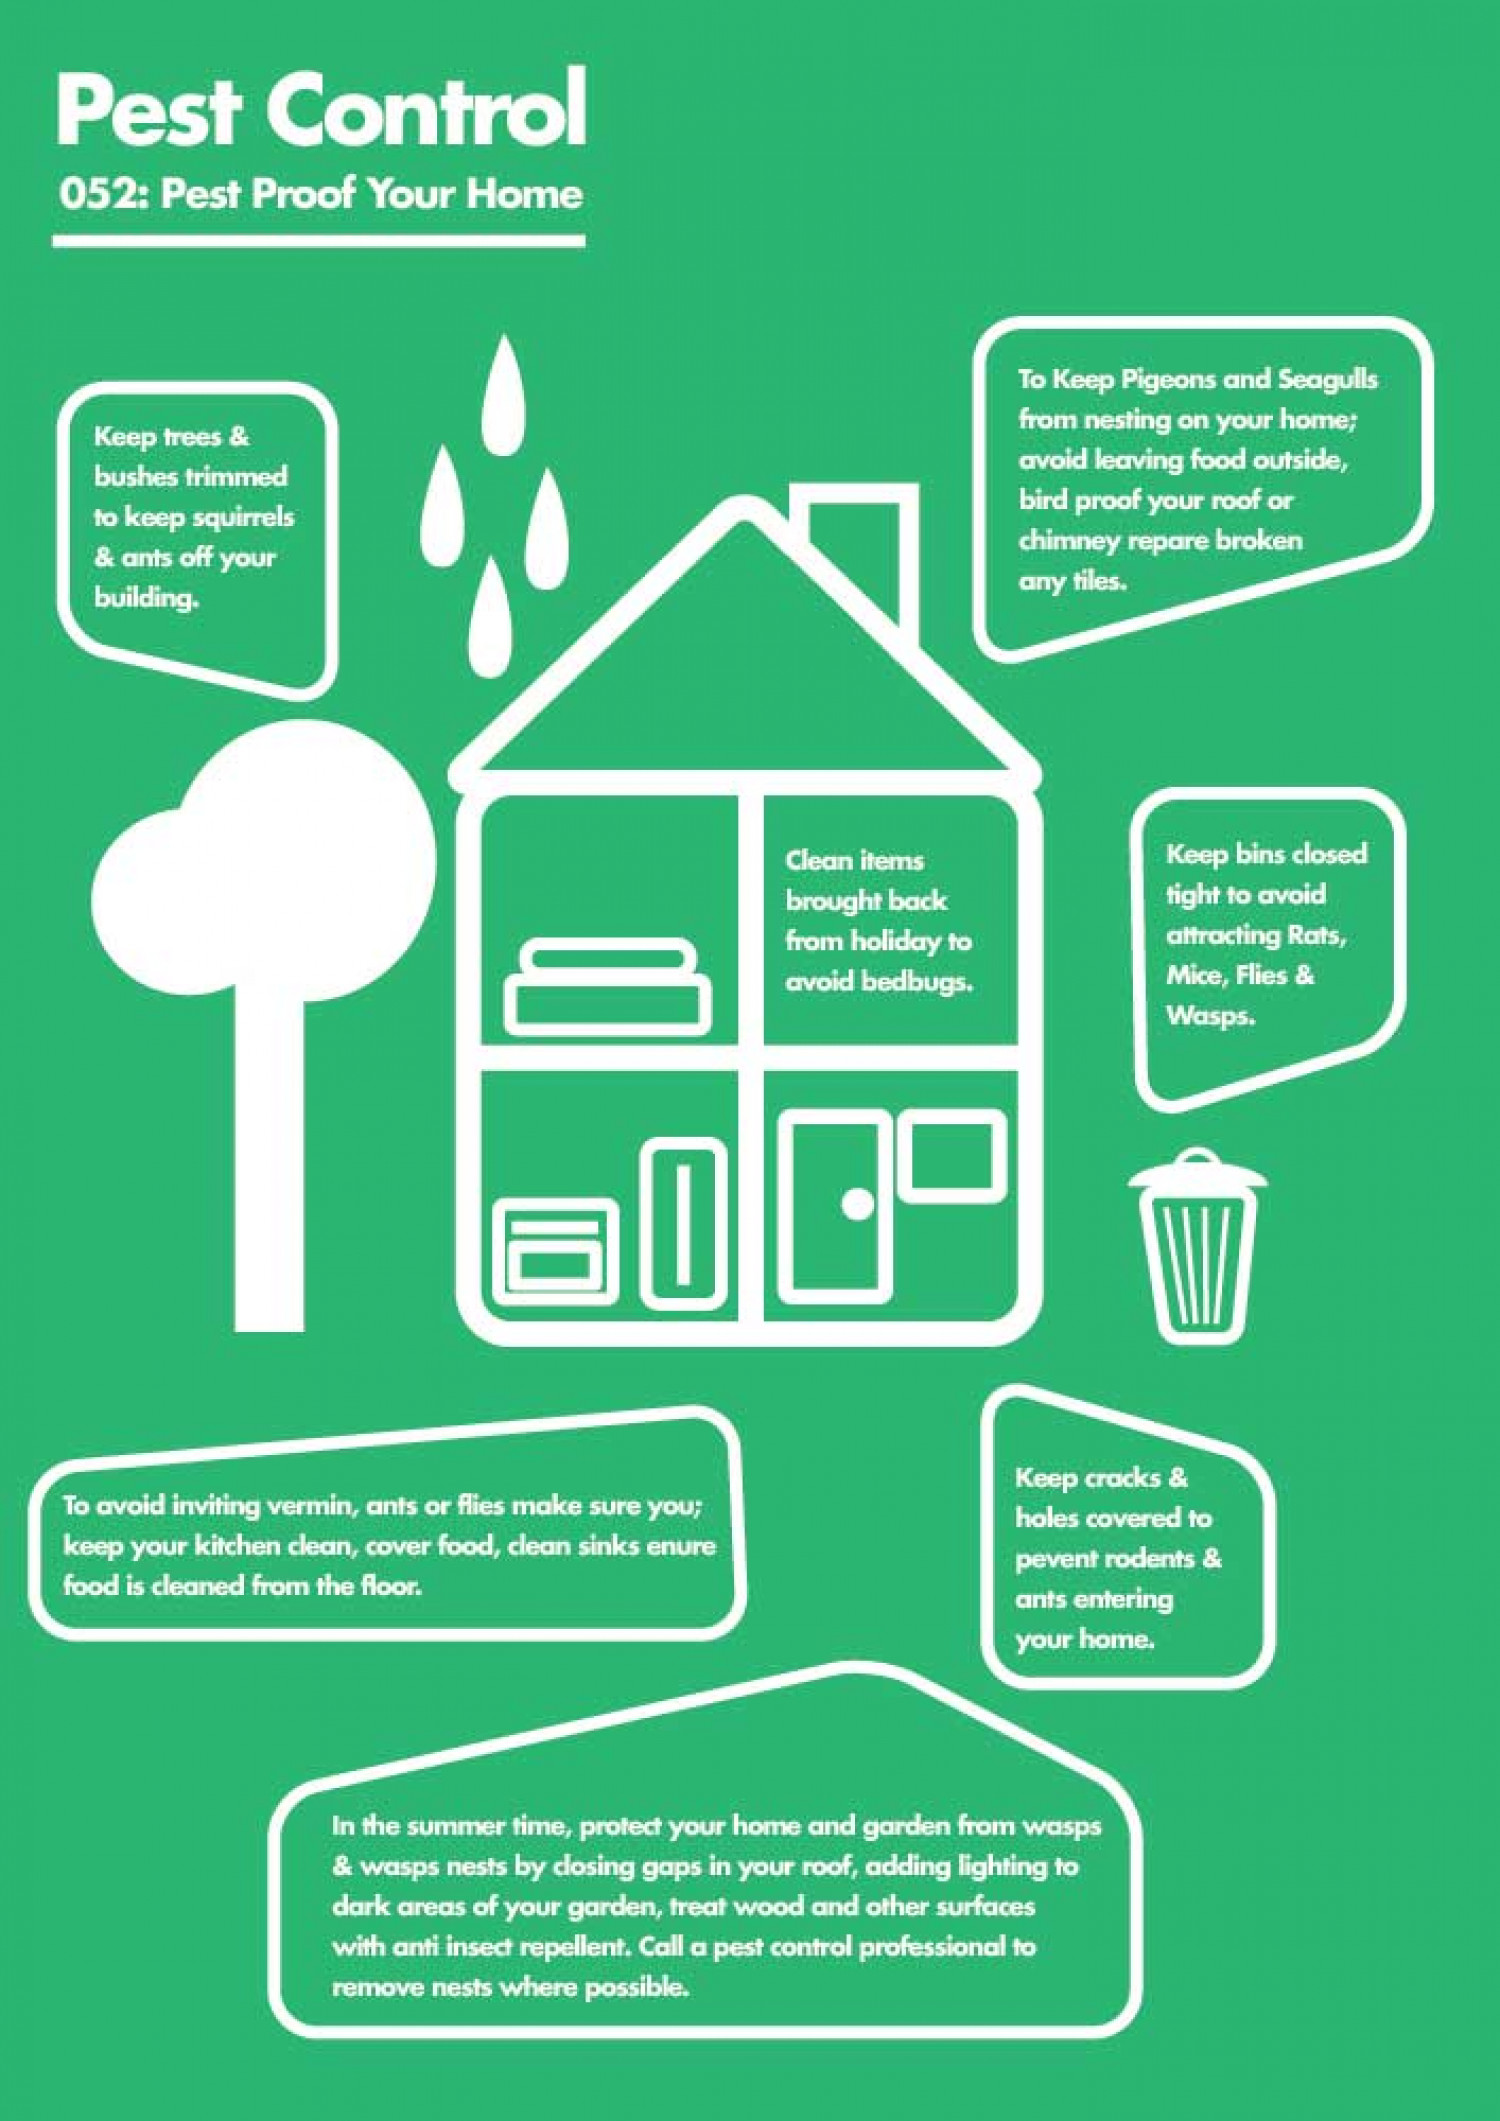 Protect Your Home Against Pest Problems Infographic